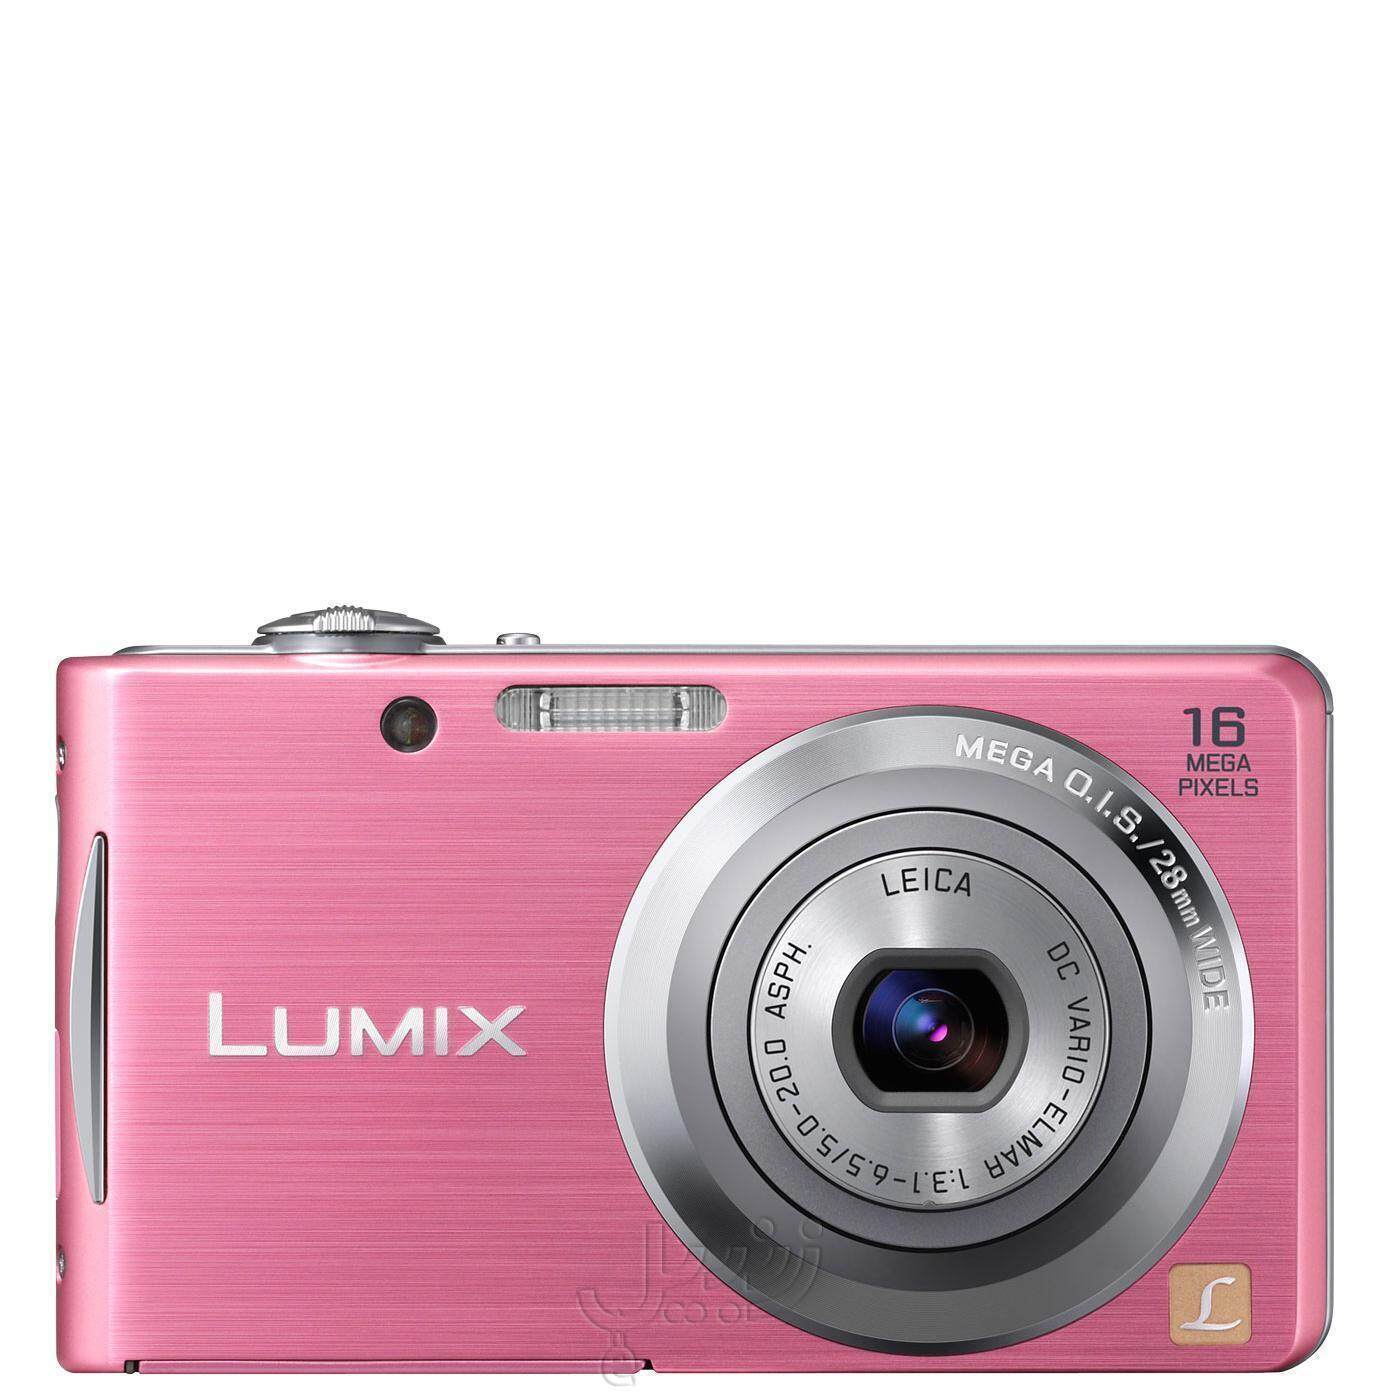 Panasonic Lumix DMC-FH5 16.1MP Point and Shoot Digital Camera (Pink) with 4x Optical Zoom